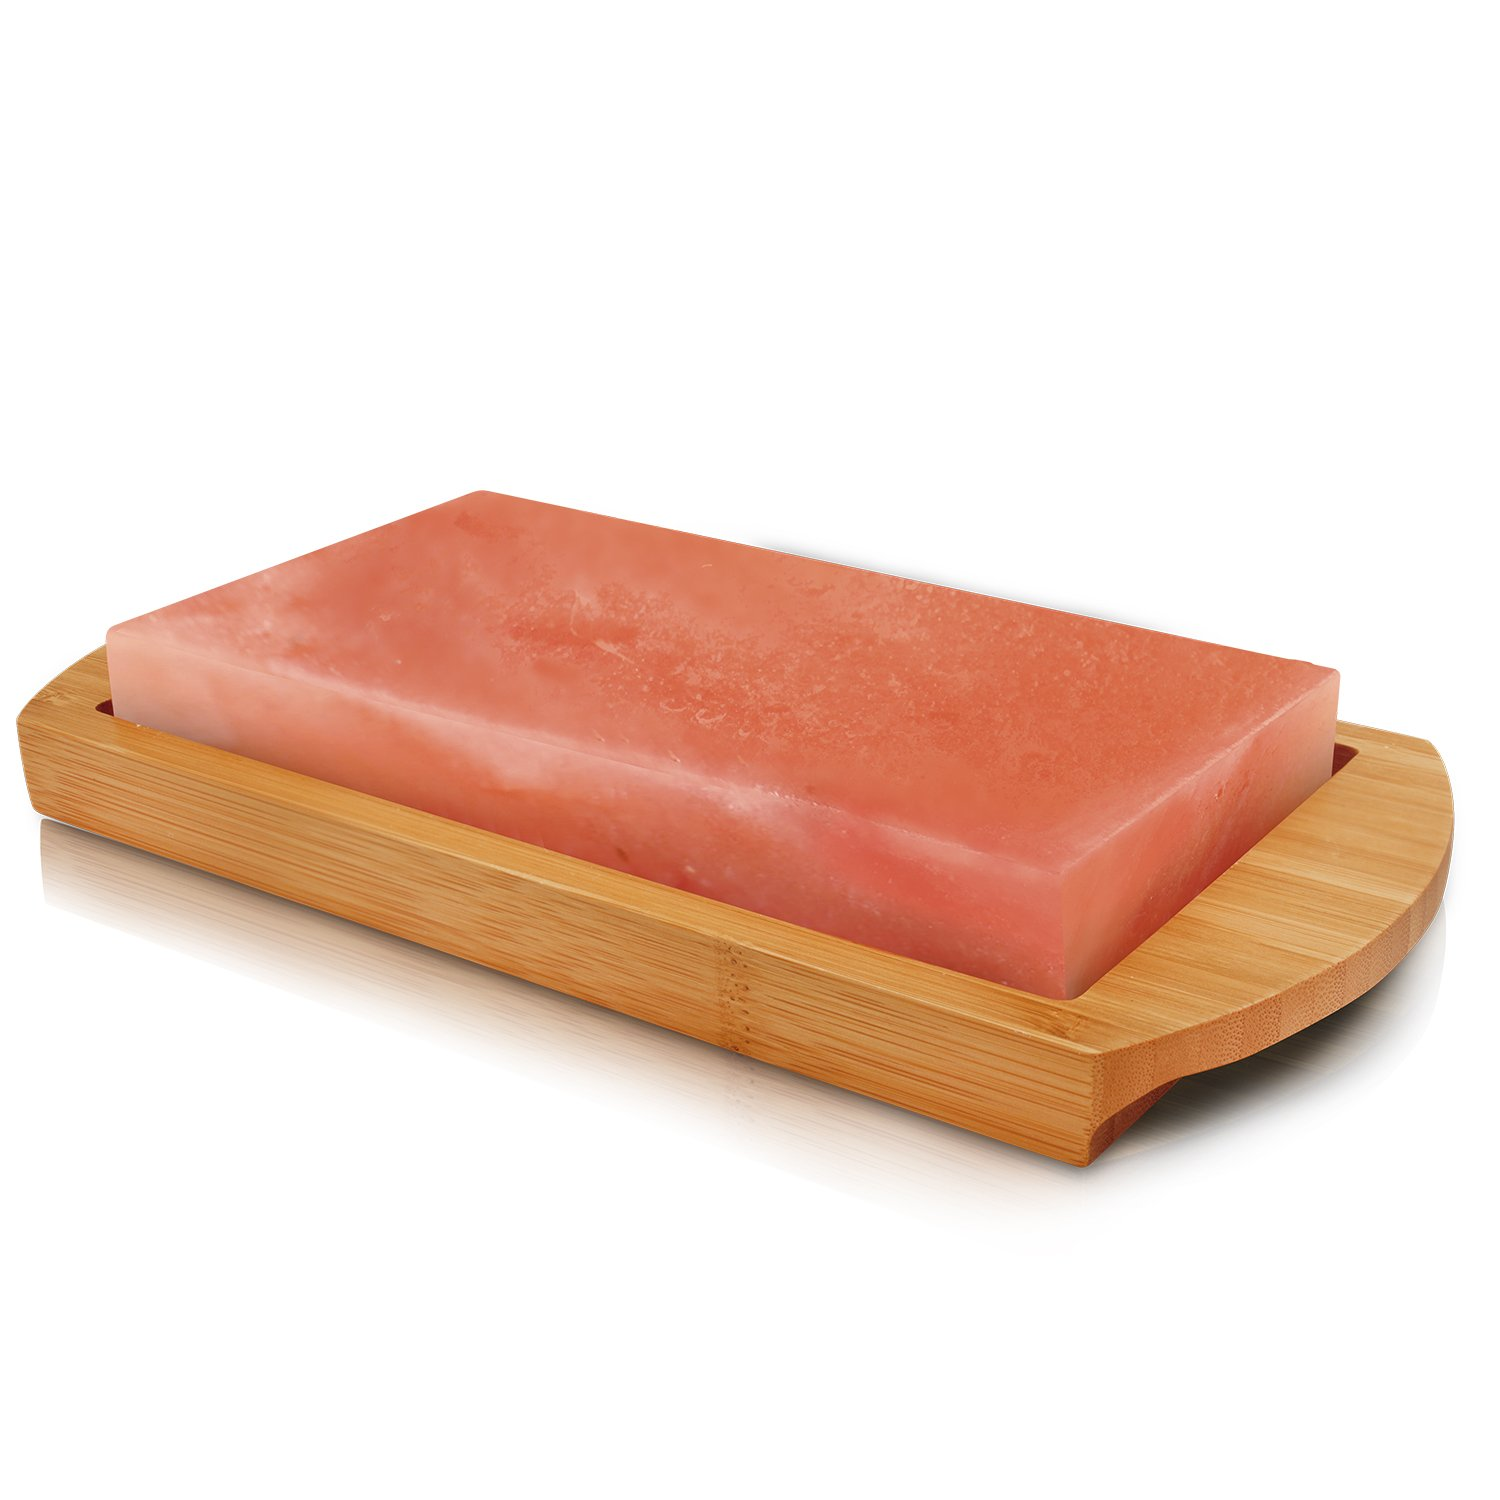 Himalayan Chef Pink Salt Gourmet Salt Cooking Plate & Serving Plate 4 x 8 x 1 with Bamboo Tray